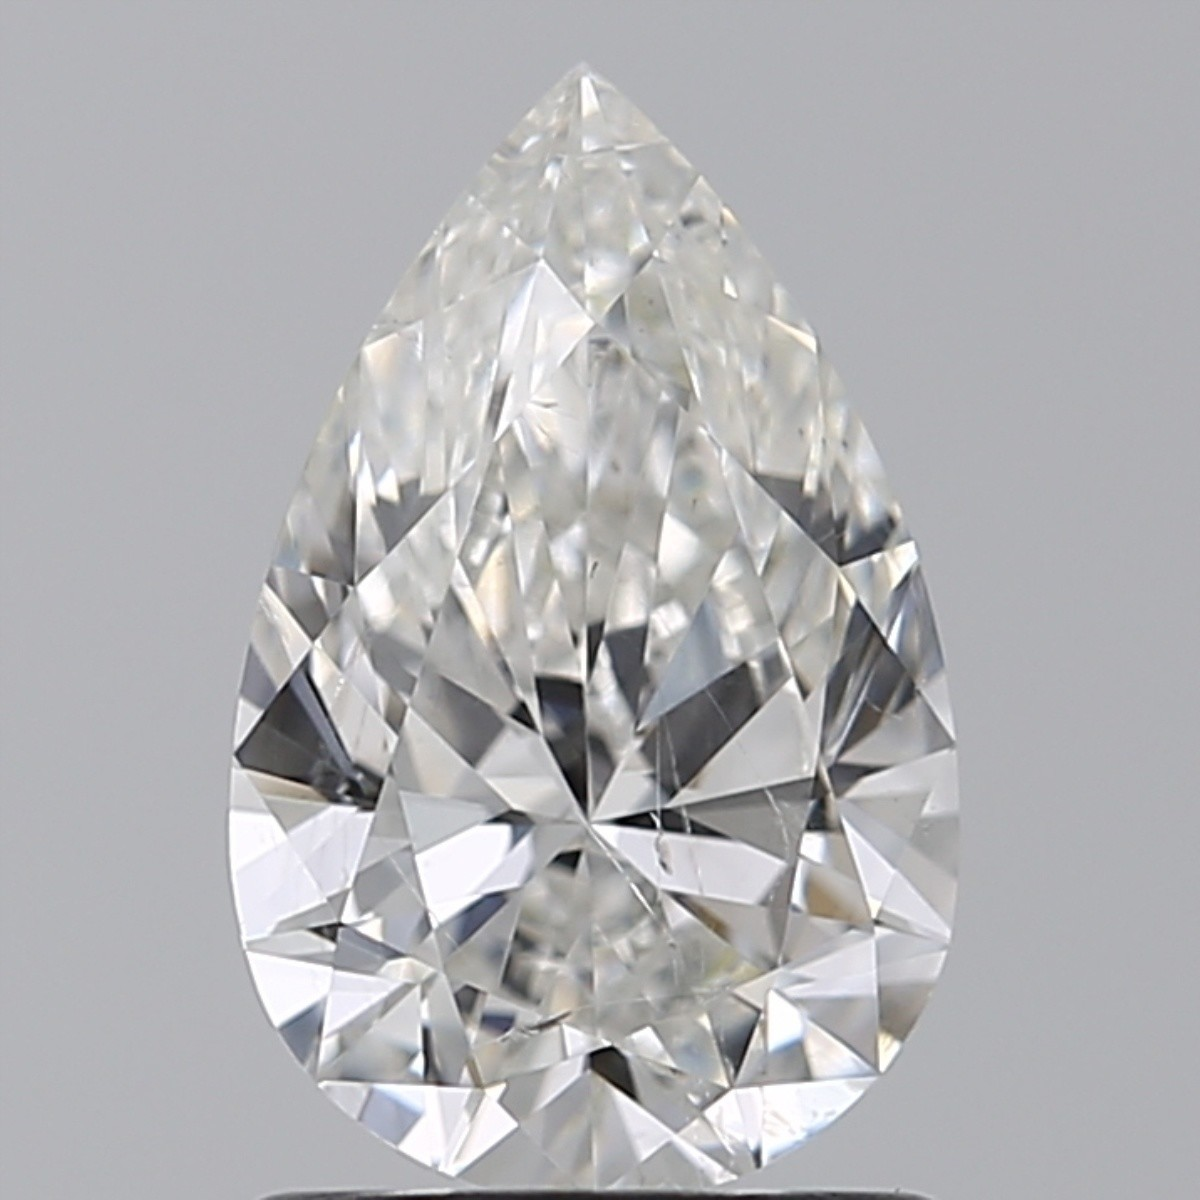 1.13 Carat Pear Diamond (G/SI2)